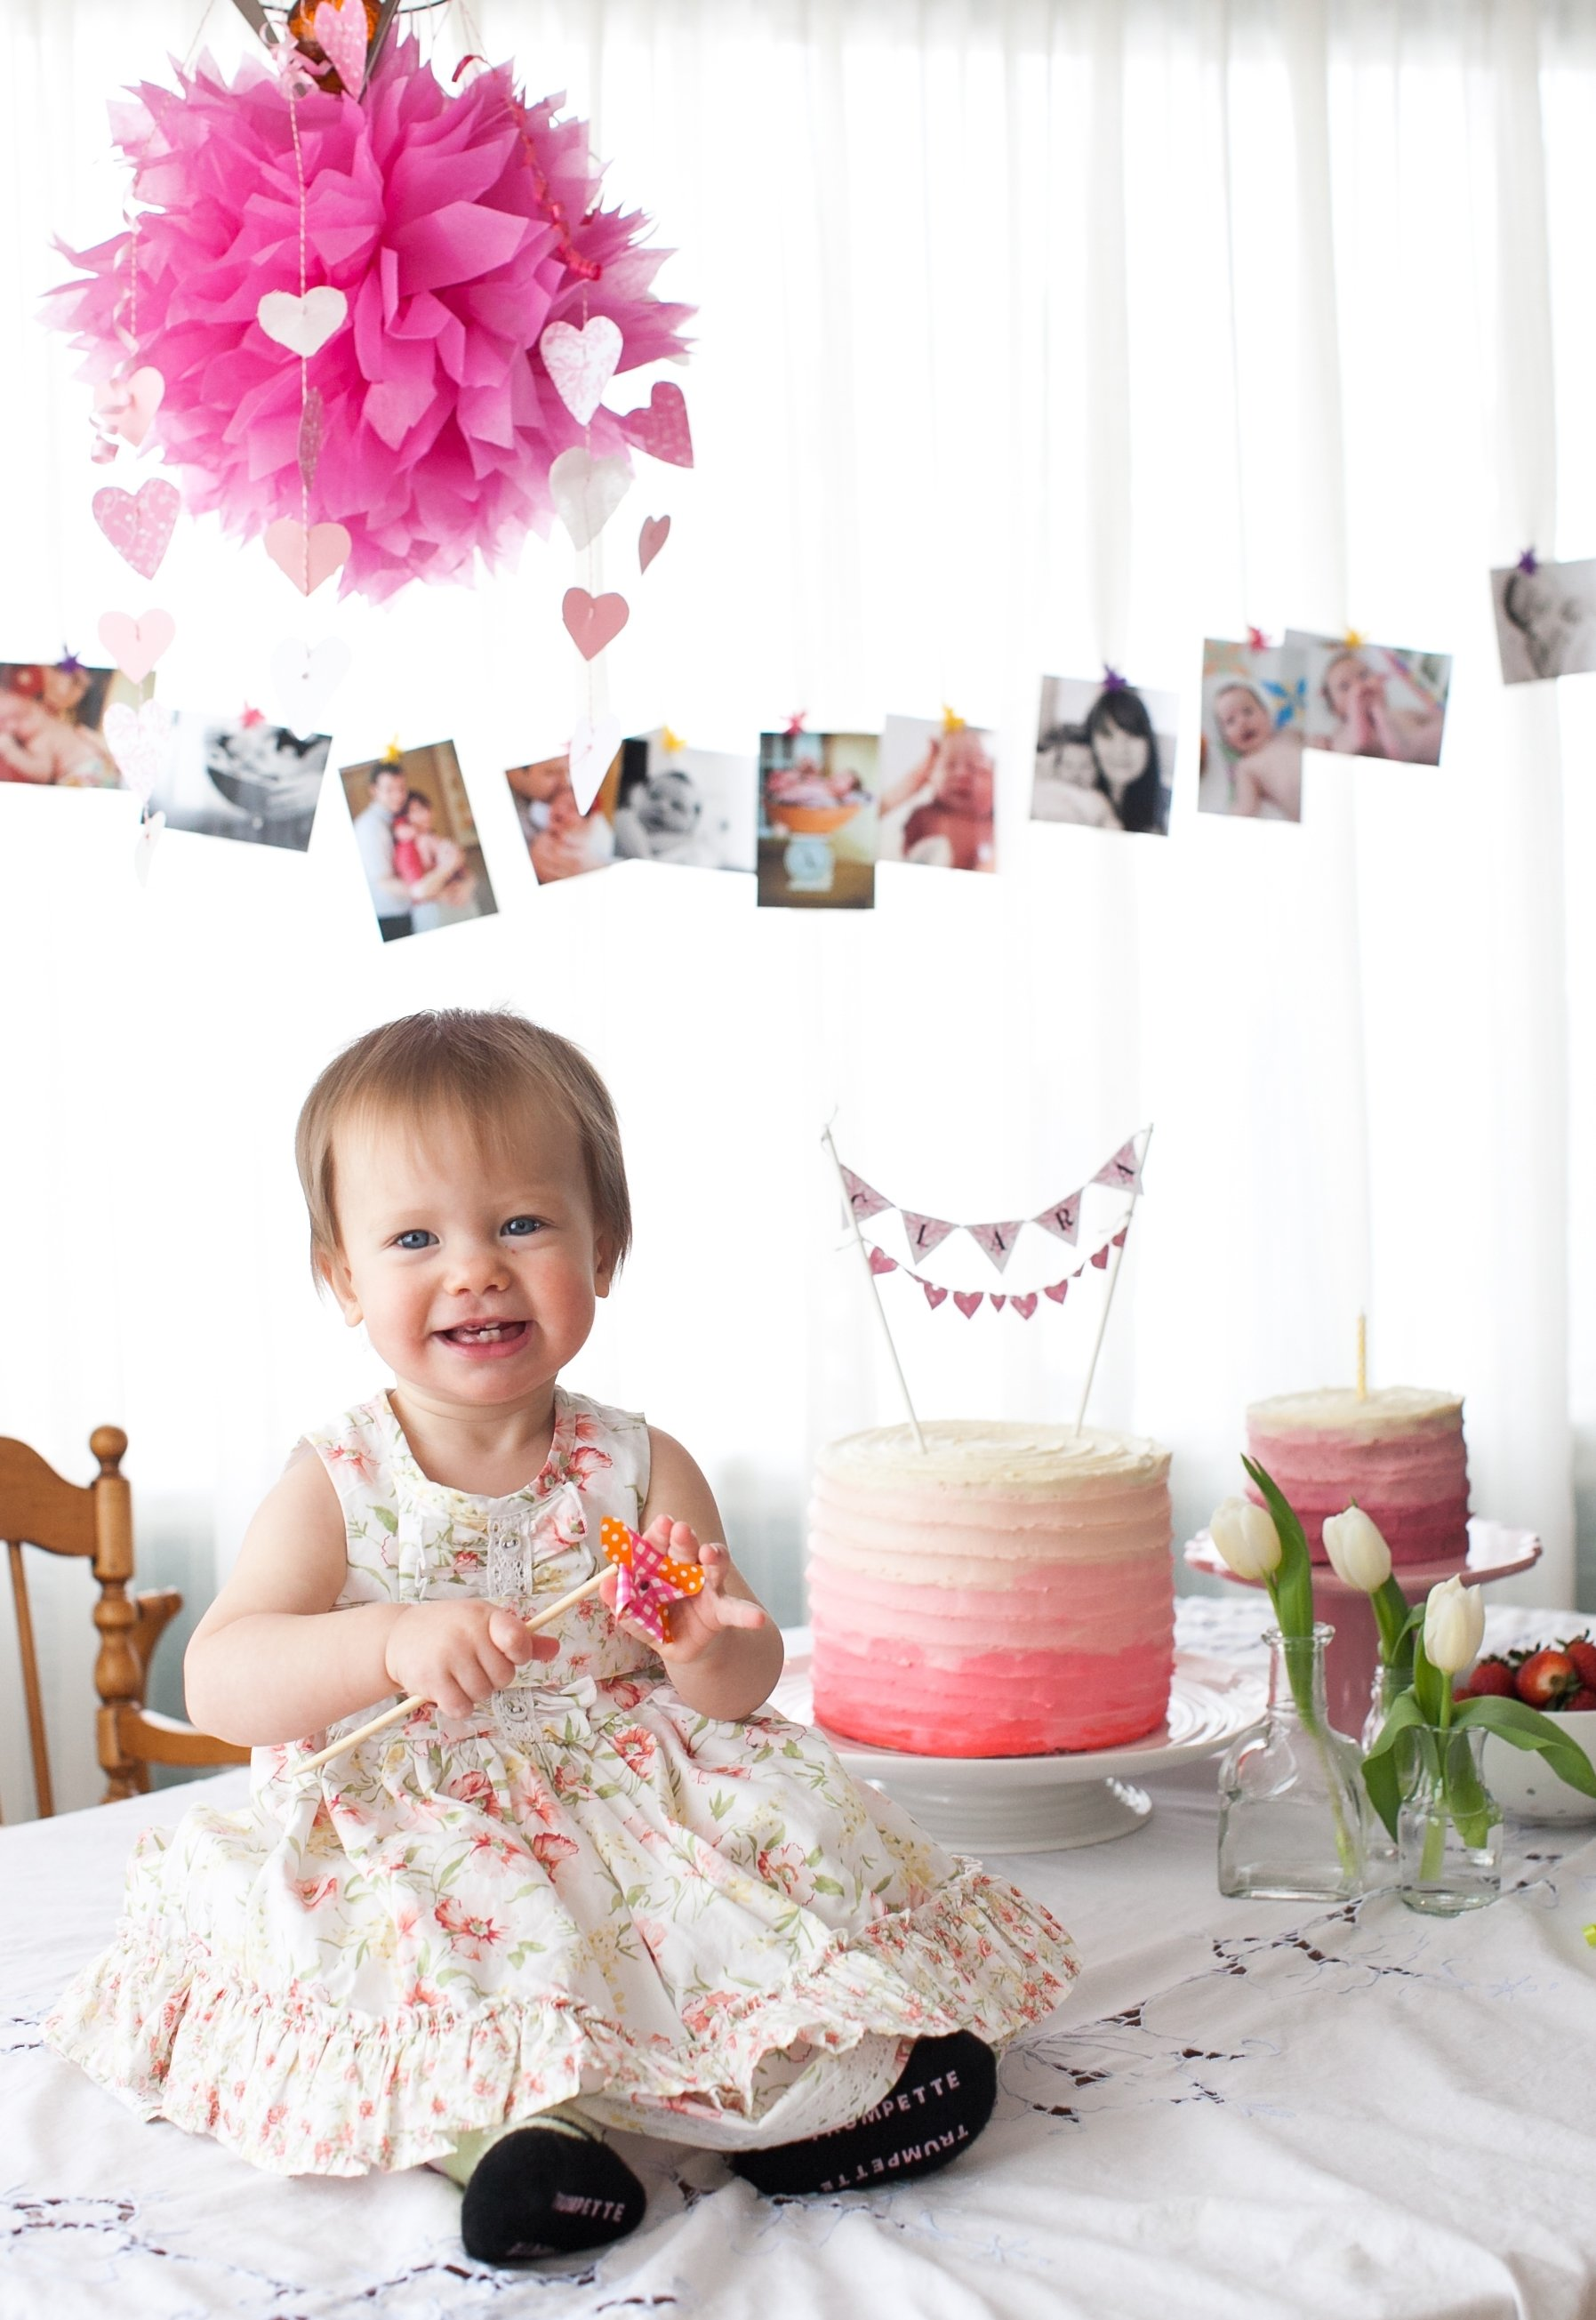 10 Great Ideas For 1St Birthday Pictures first birthday party ideas recipe apple spice cake with maple 1 2020